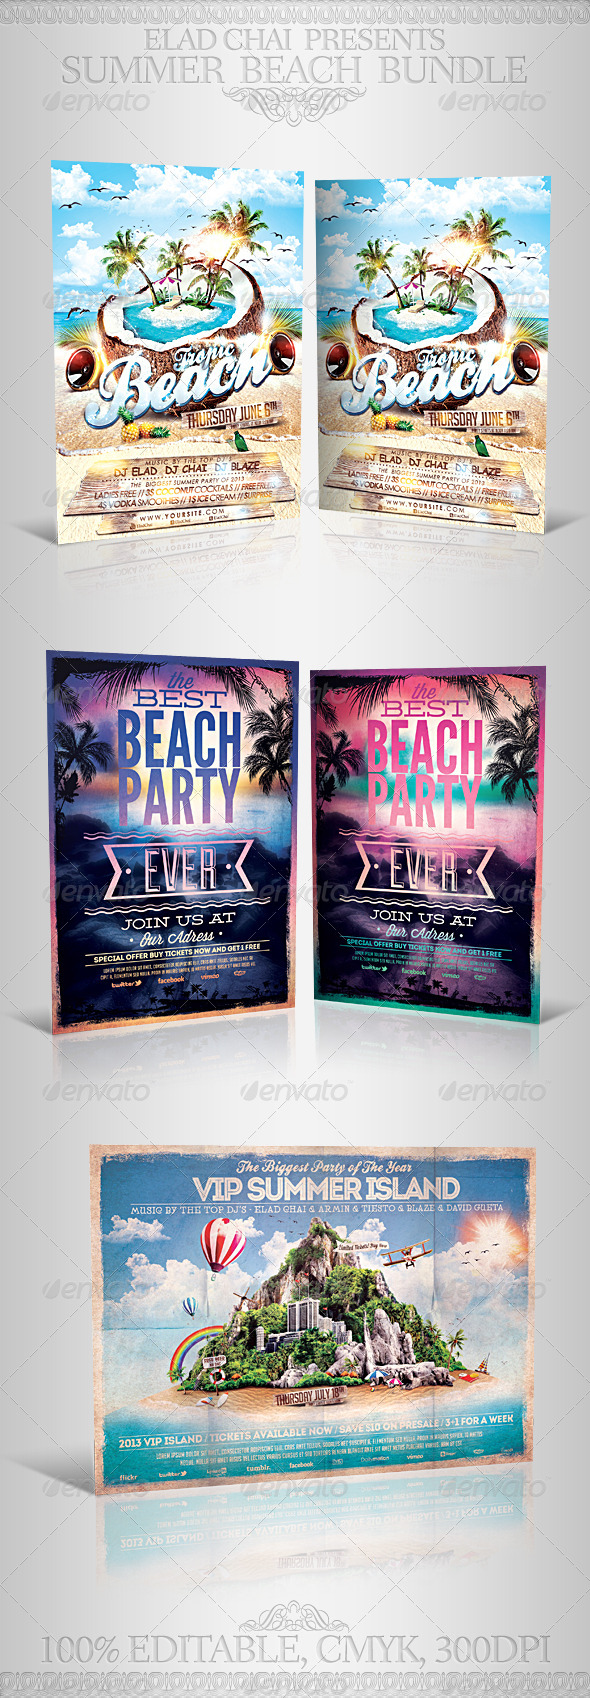 GraphicRiver Summer Beach Party Flyer Bundle 5330375